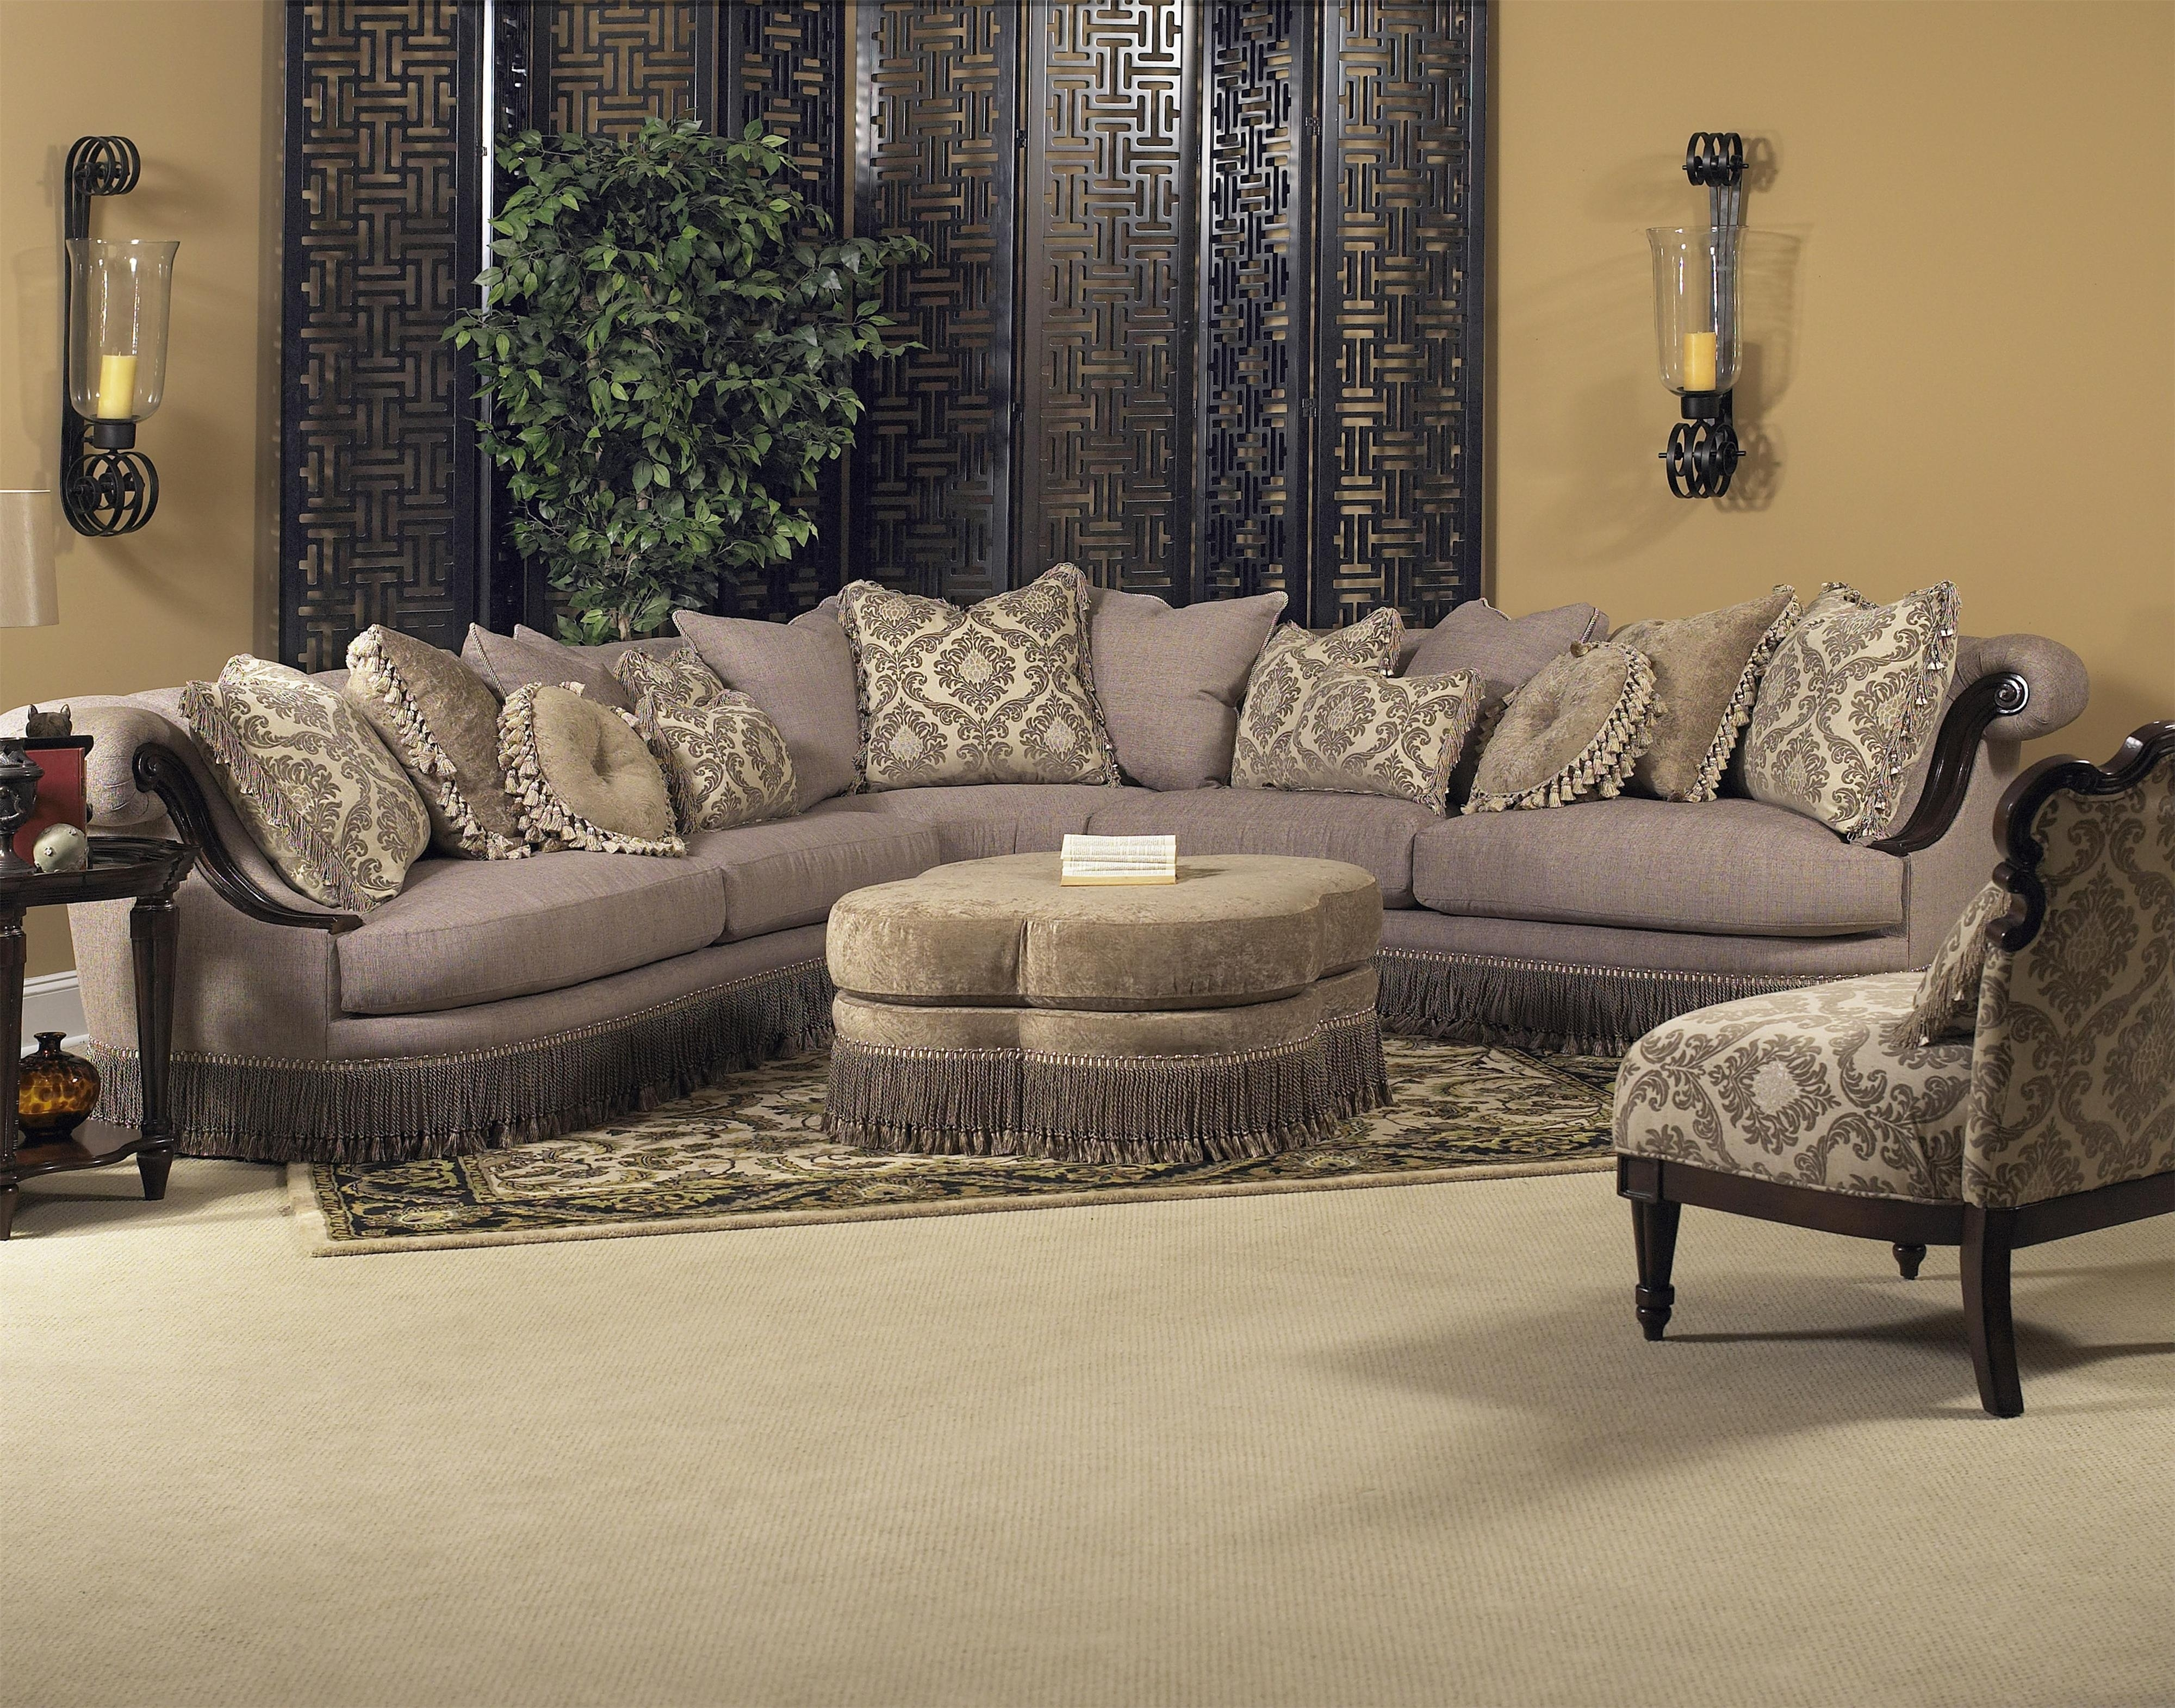 Classic Wellingsley Sectionalfairmont Designs Available At Royal inside Sectional Sofas at Birmingham Al (Image 3 of 15)